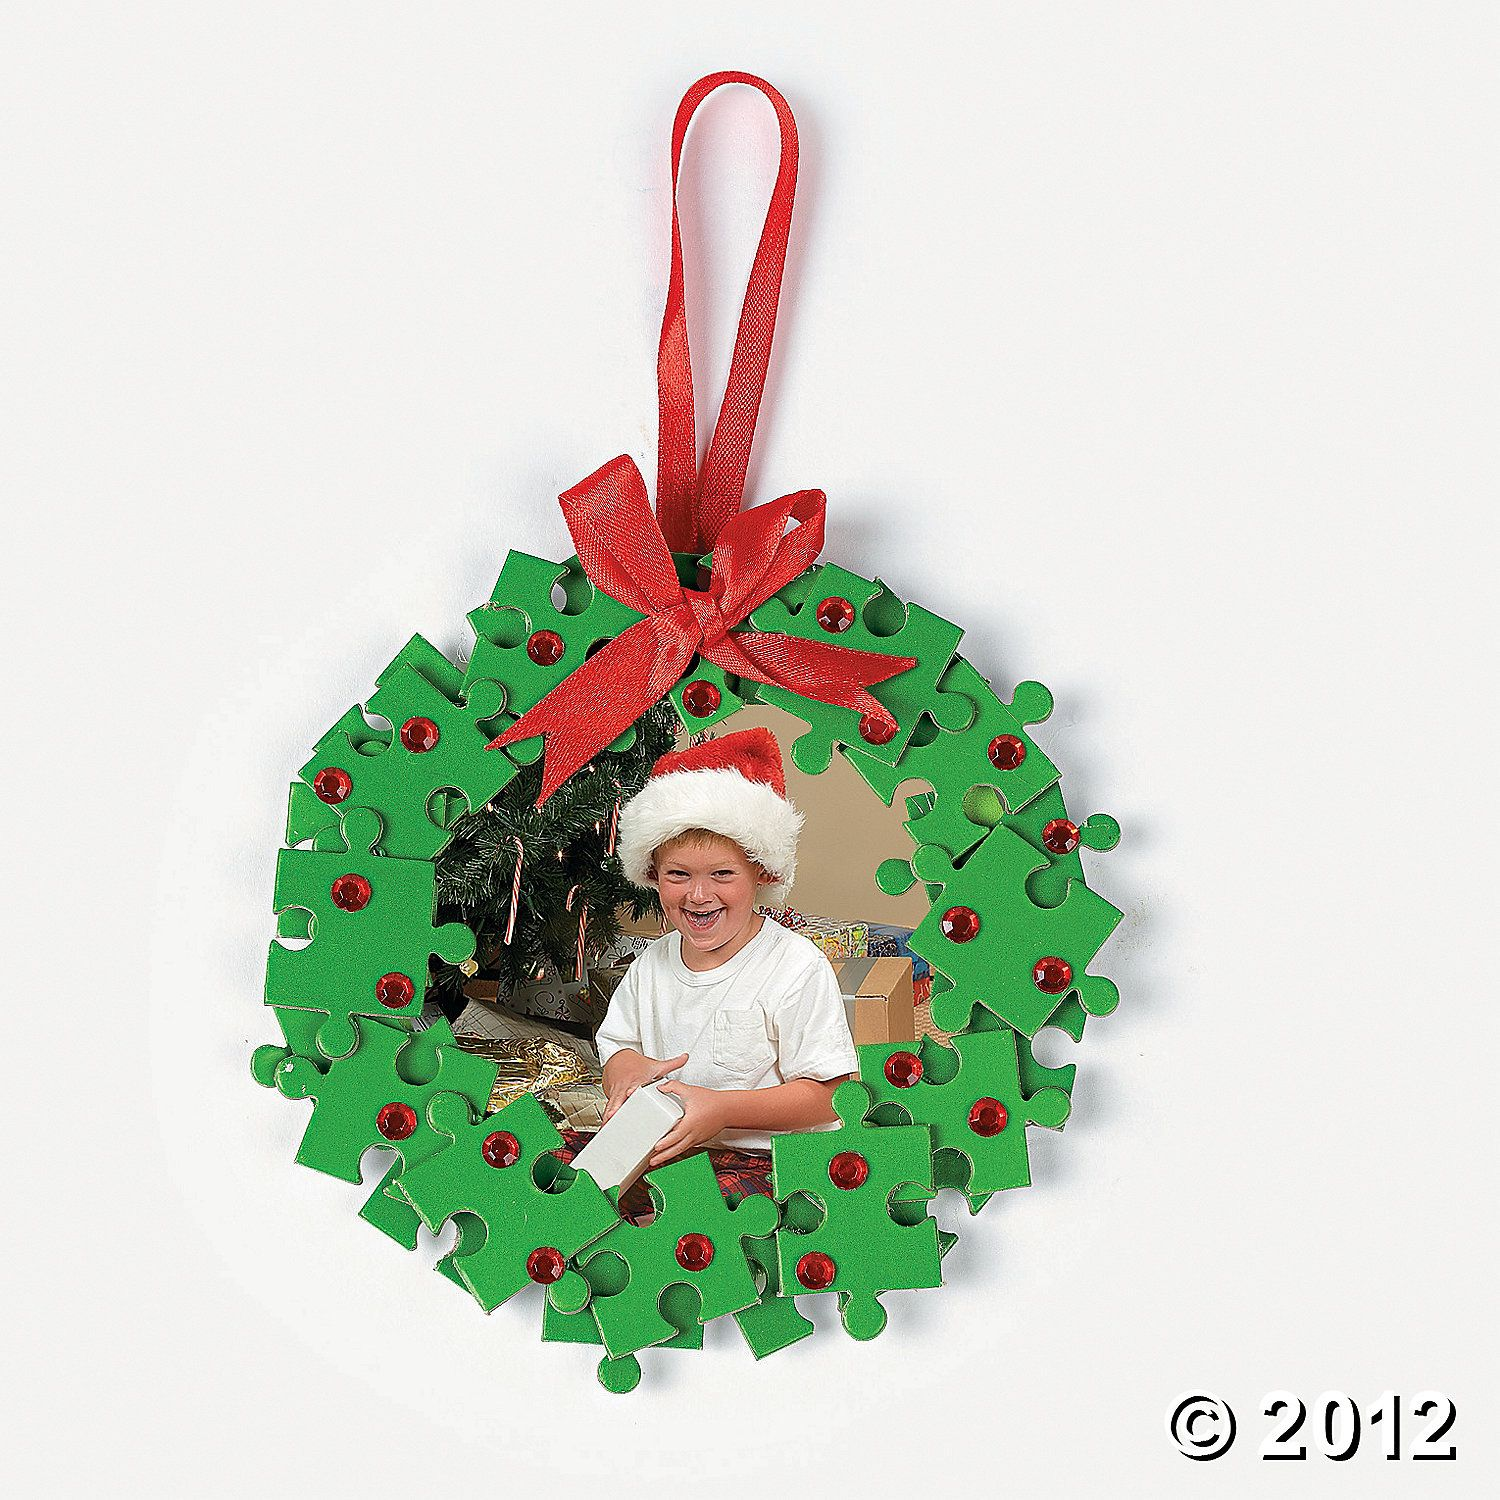 Puzzle Piece Wreath Photo Frame Ornament  Could Diy Without